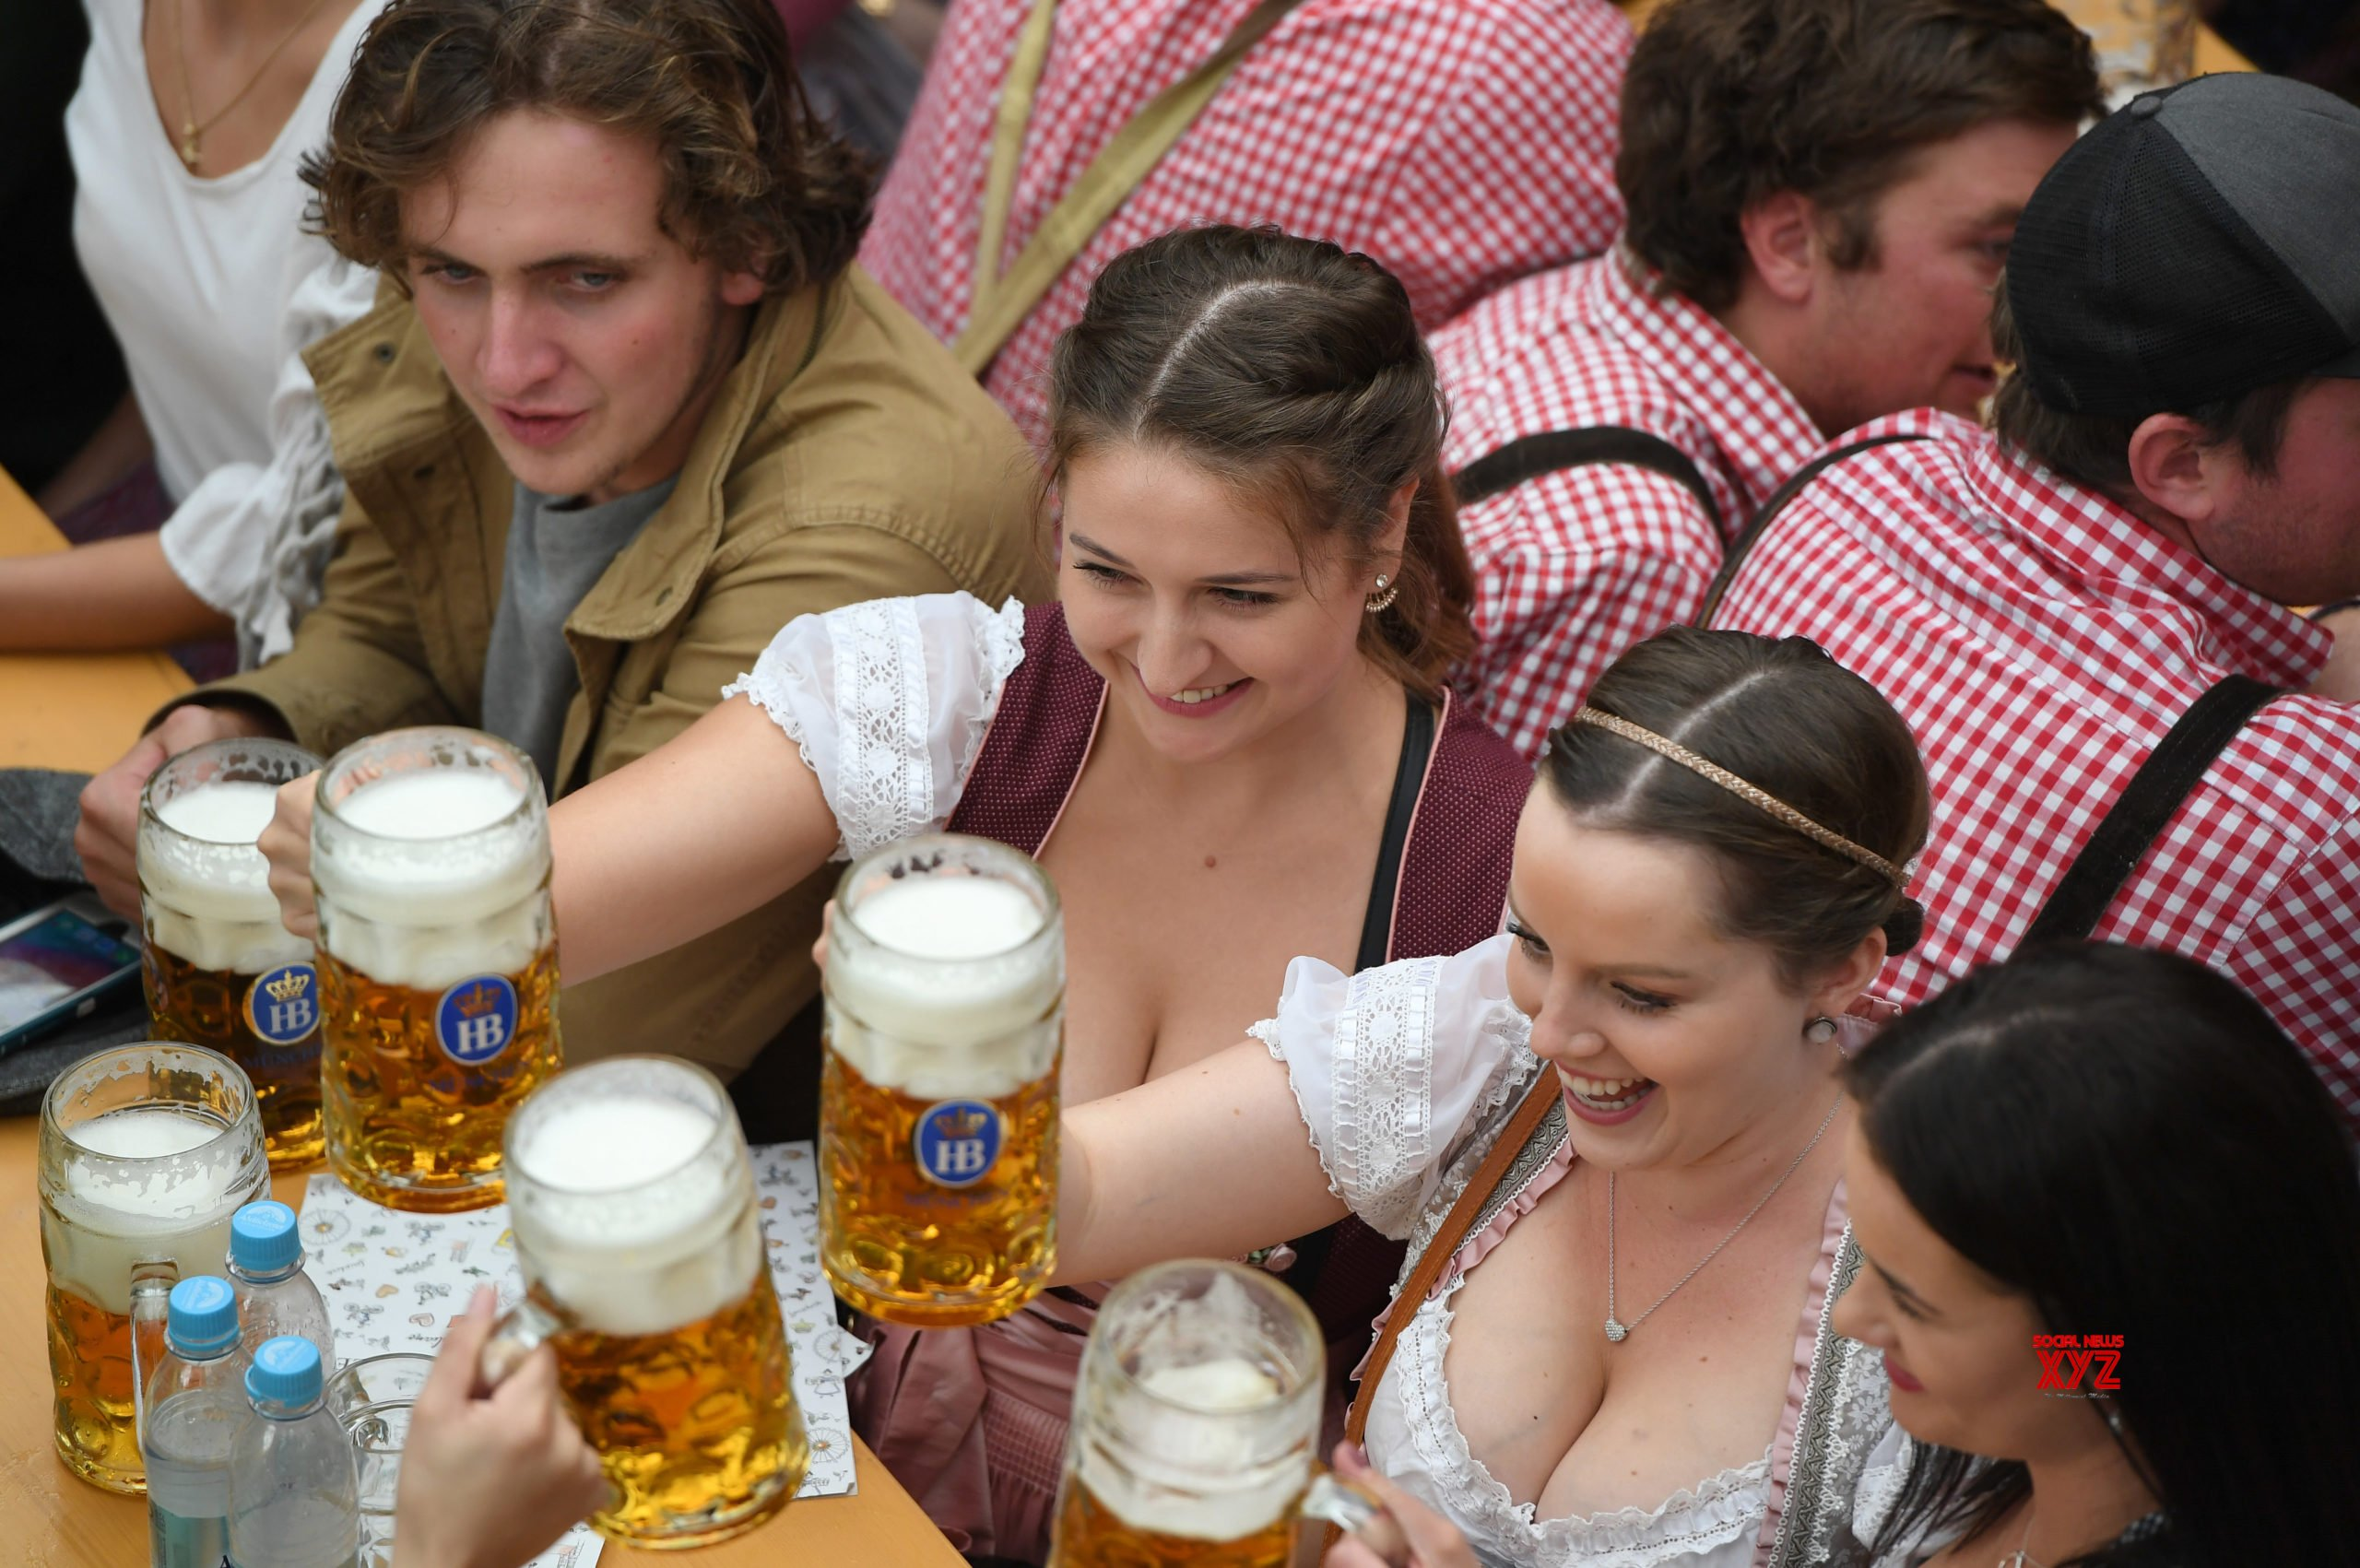 Germany cancels Oktoberfest again due to Covid-19